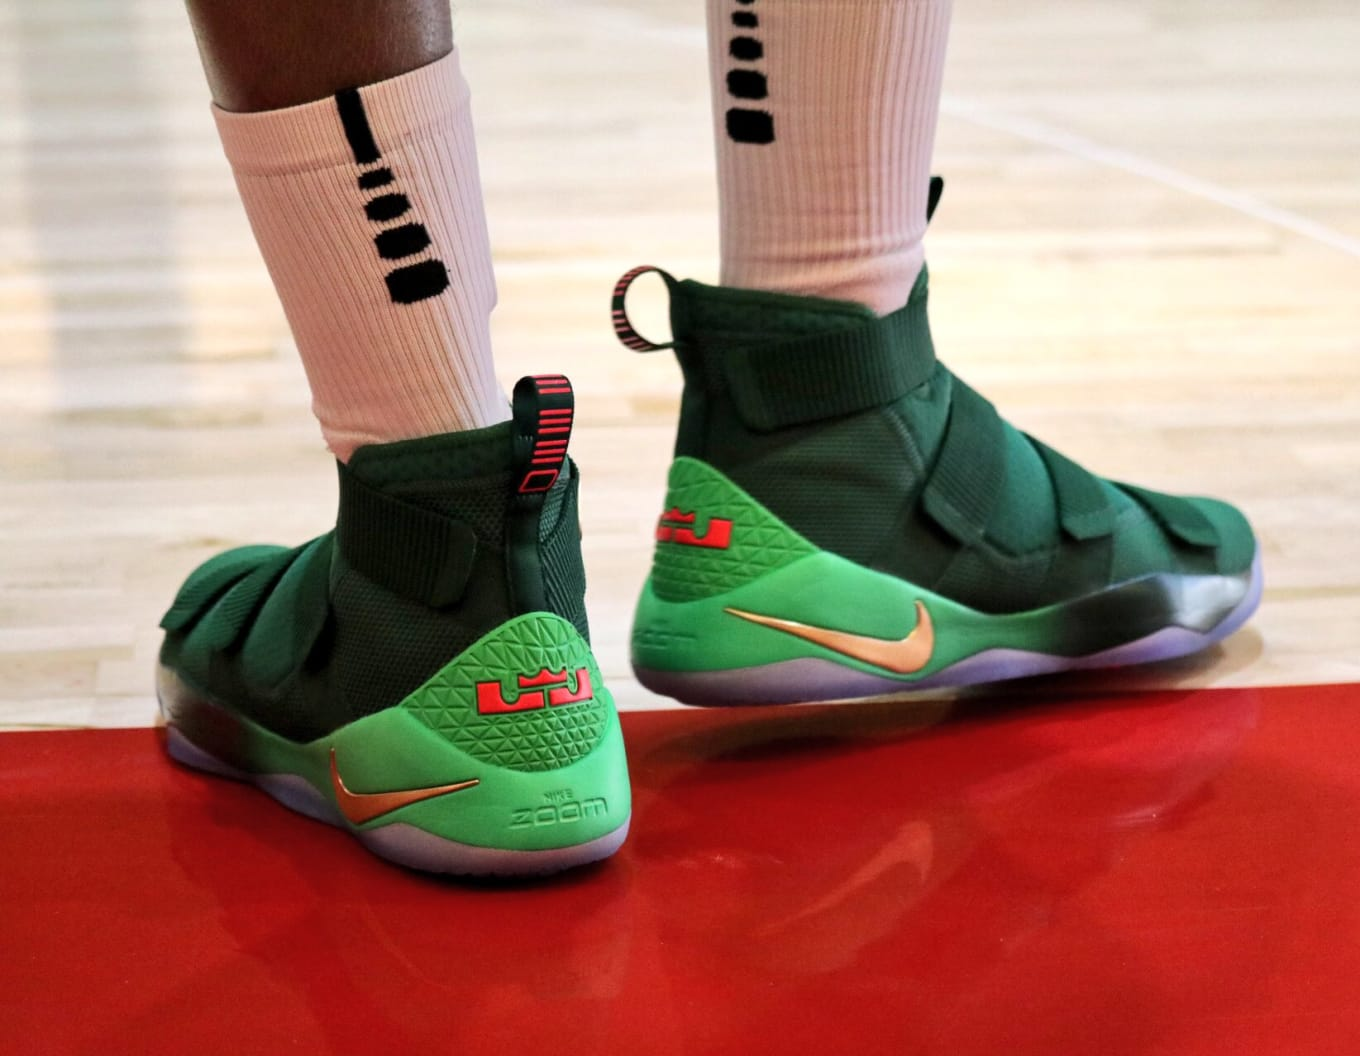 los angeles 8e3d1 f46c2 Nike Made Christmas Colorways of LeBron and Kobe s Sneakers. Festive  details on the Soldier 11 and Kobe A.D. Mid.